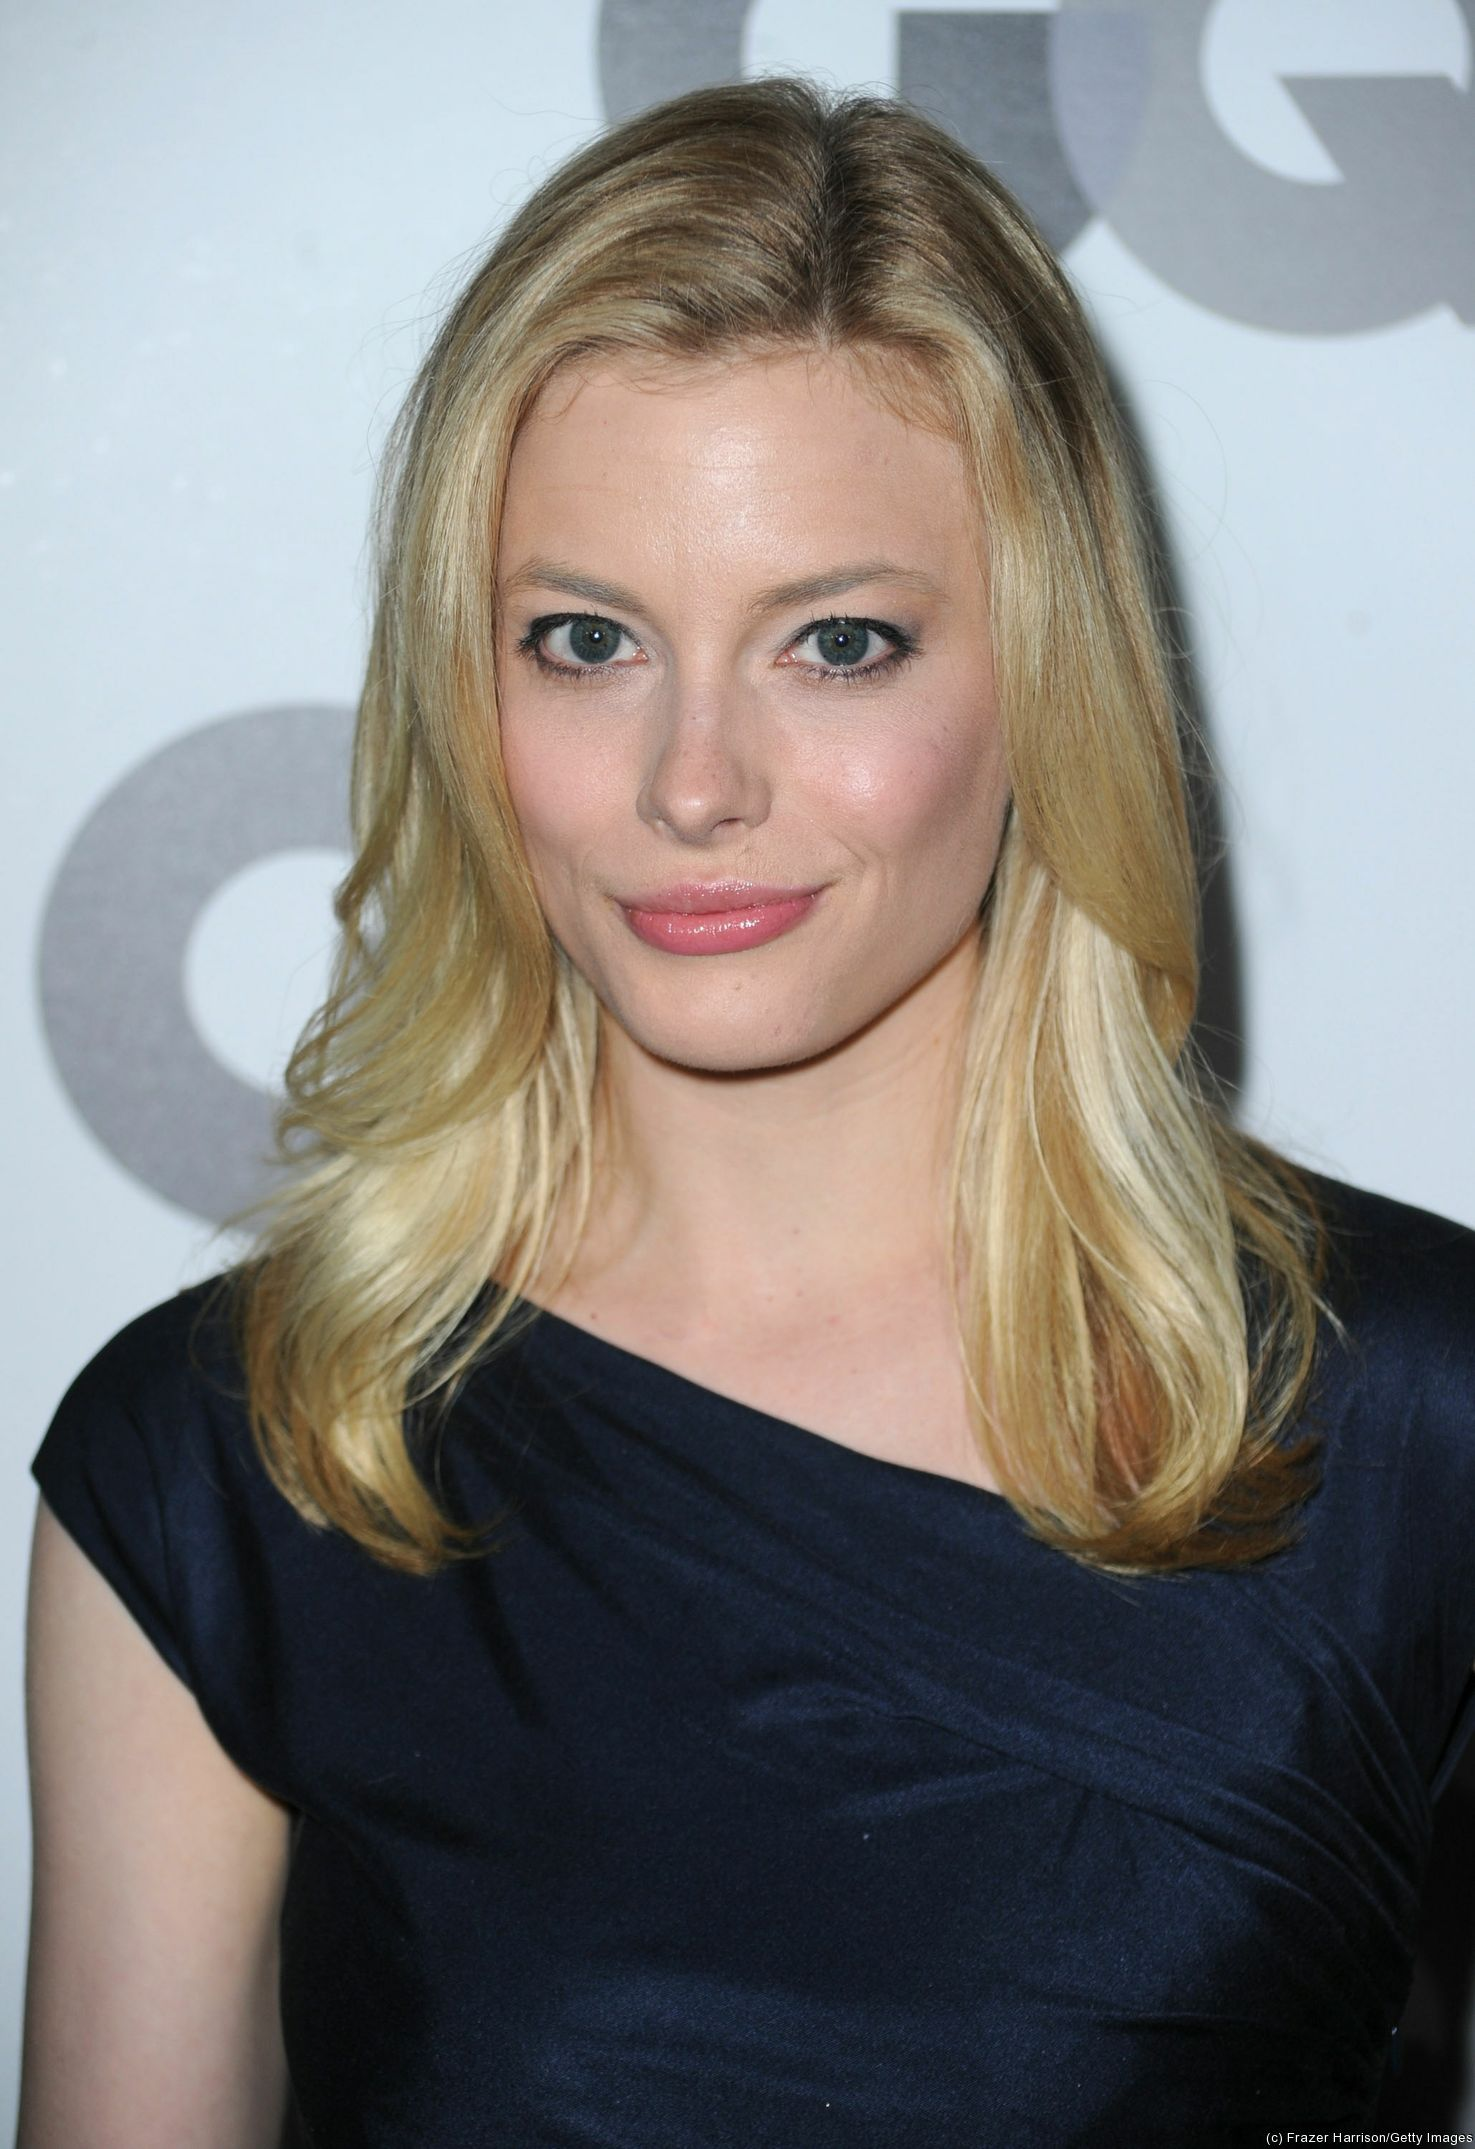 gillian jacobs fan sitegillian jacobs boyfriend, gillian jacobs maxim, gillian jacobs husband, gillian jacobs fan, gillian jacobs gif hunt, gillian jacobs relationship, gillian jacobs who dated who, gillian jacobs parents, gillian jacobs fan site, gillian jacobs contact lenses, gillian jacobs twitter, gillian jacobs wiki, gillian jacobs dates, gillian jacobs craig ferguson, gillian jacobs leather, gillian jacobs instagram, gillian jacobs and margot robbie, gillian jacobs facebook, gillian jacobs insta, gillian jacobs netflix